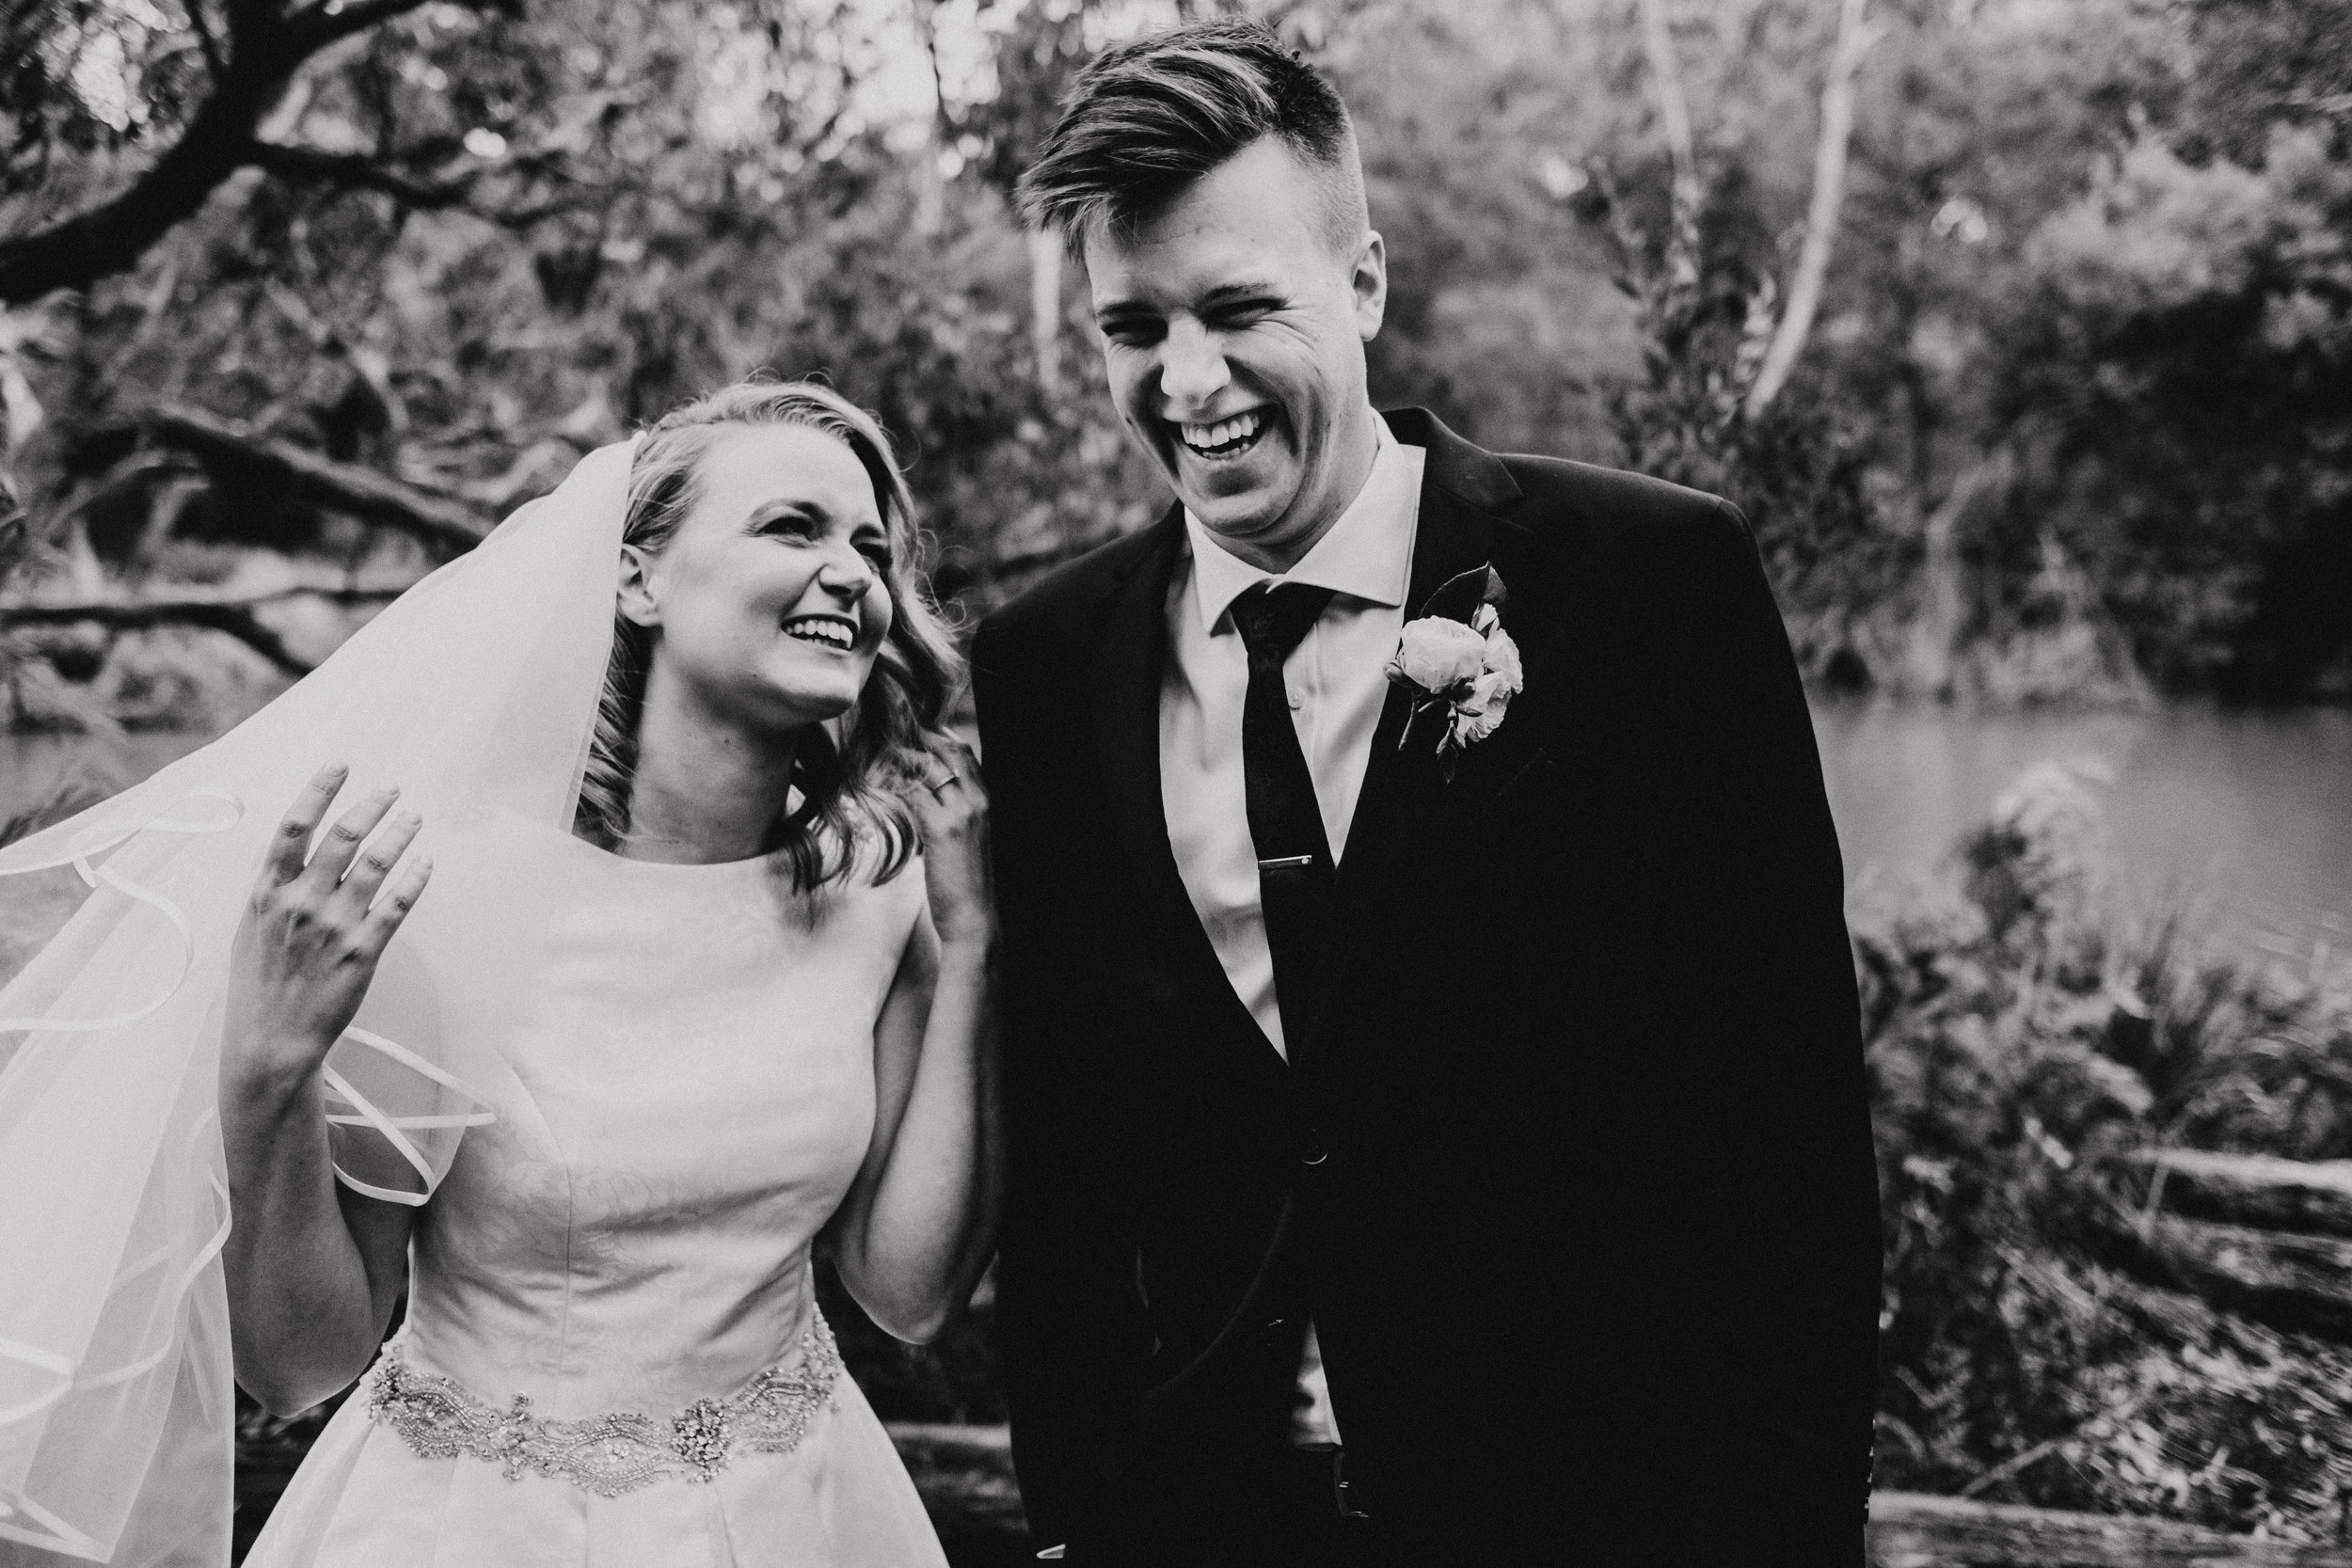 Bride and groom laughing in black and white